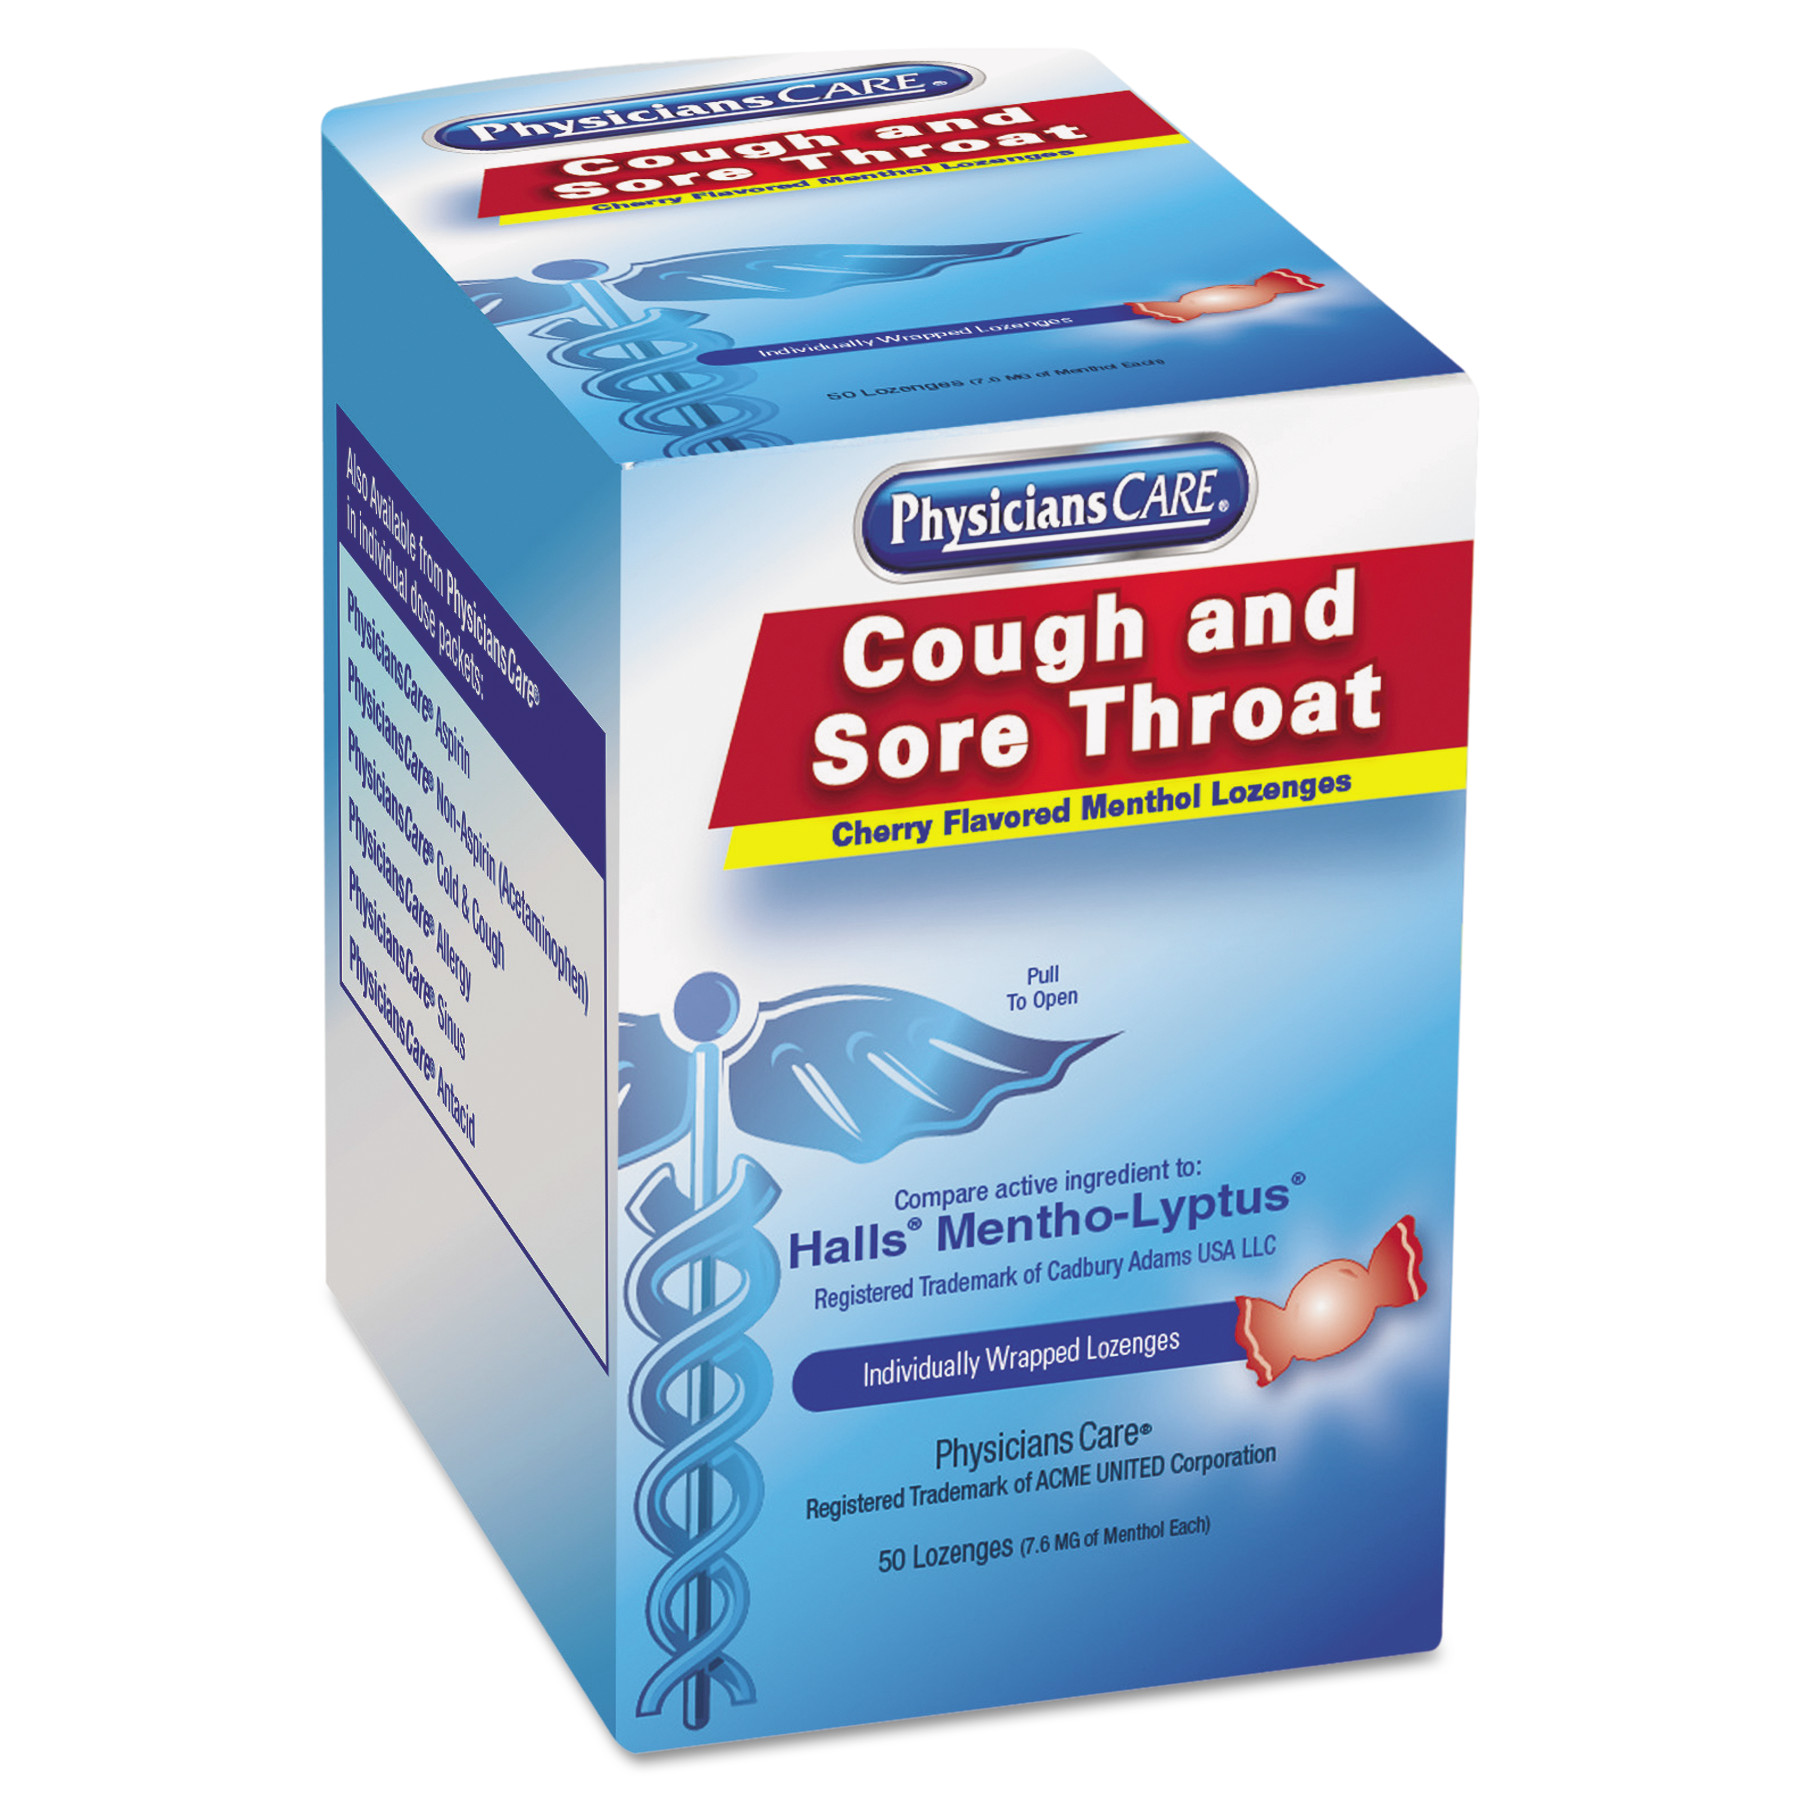 PhysiciansCare Cough and Sore Throat, Cherry Menthol Lozenges, 50 Individually Wrapped per Box